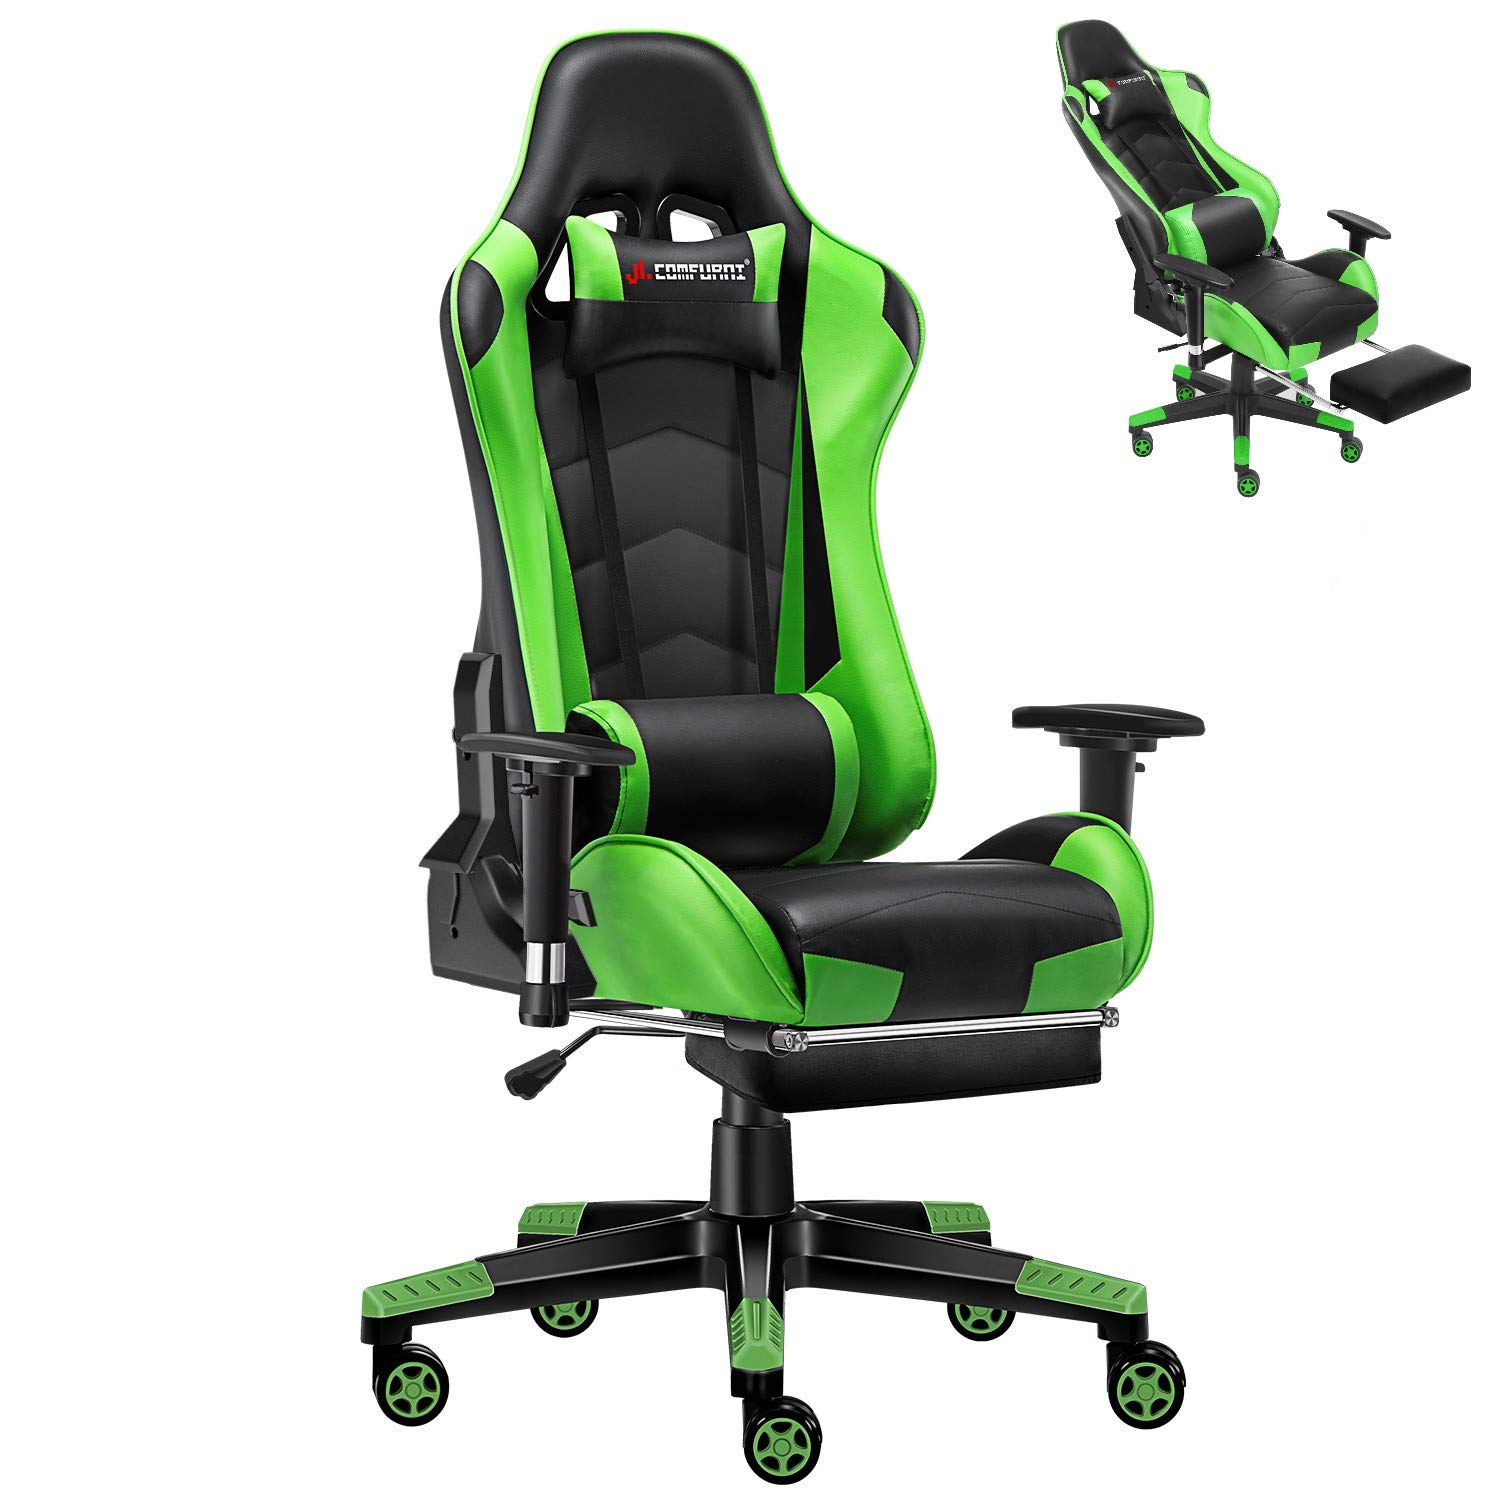 JL Comfurni Gaming Chair with Footrest Office Chair Reclining High-Back Ergonomic PU Leather Desk Chair Racing Swivel Computer Chair with Adjustable Headrest and Lumbar Support for Adults Green by JL Comfurni